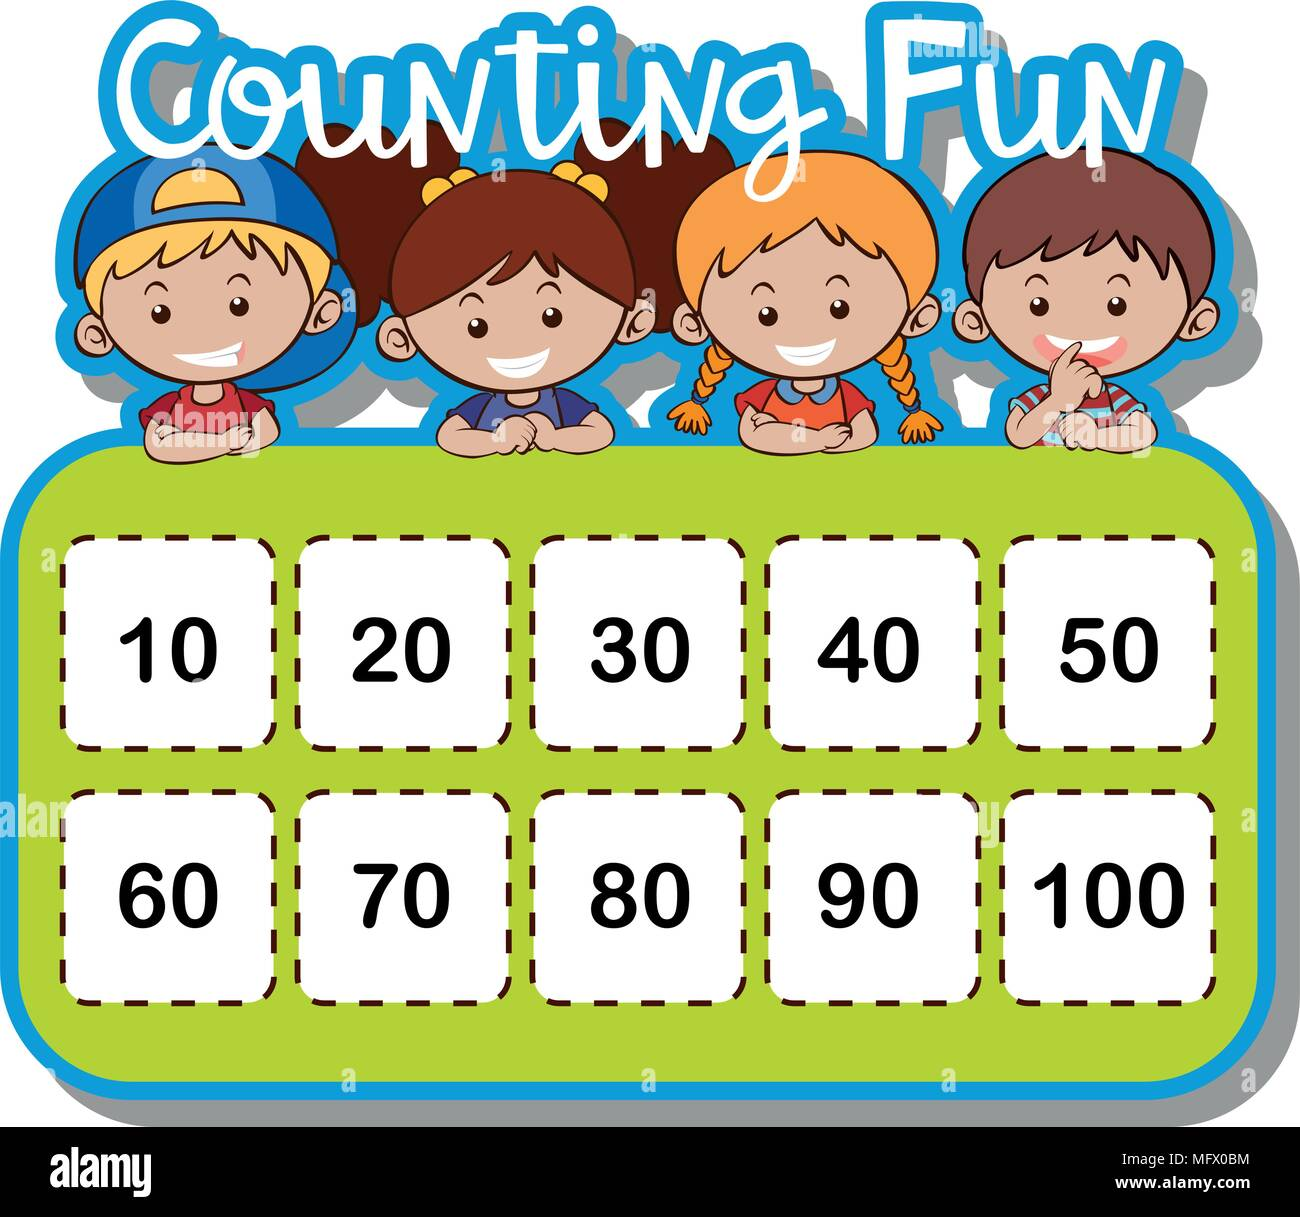 Math Worksheet For Counting Numbers Illustration Stock Vector Art Amp Illustration Vector Image